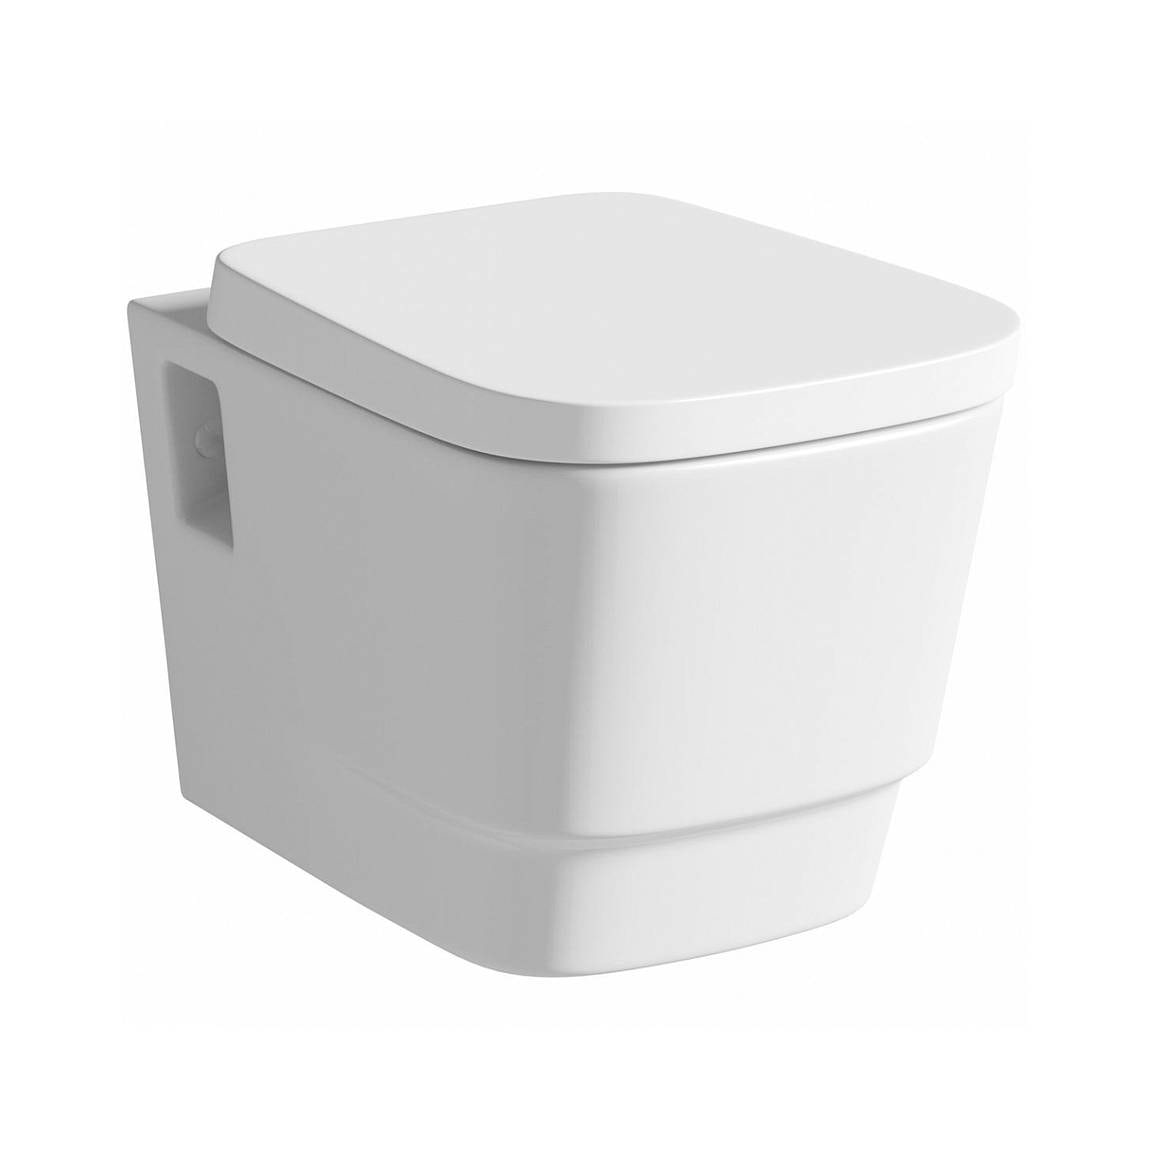 Foster Wall Hung Toilet inc Luxury Soft Close Seat